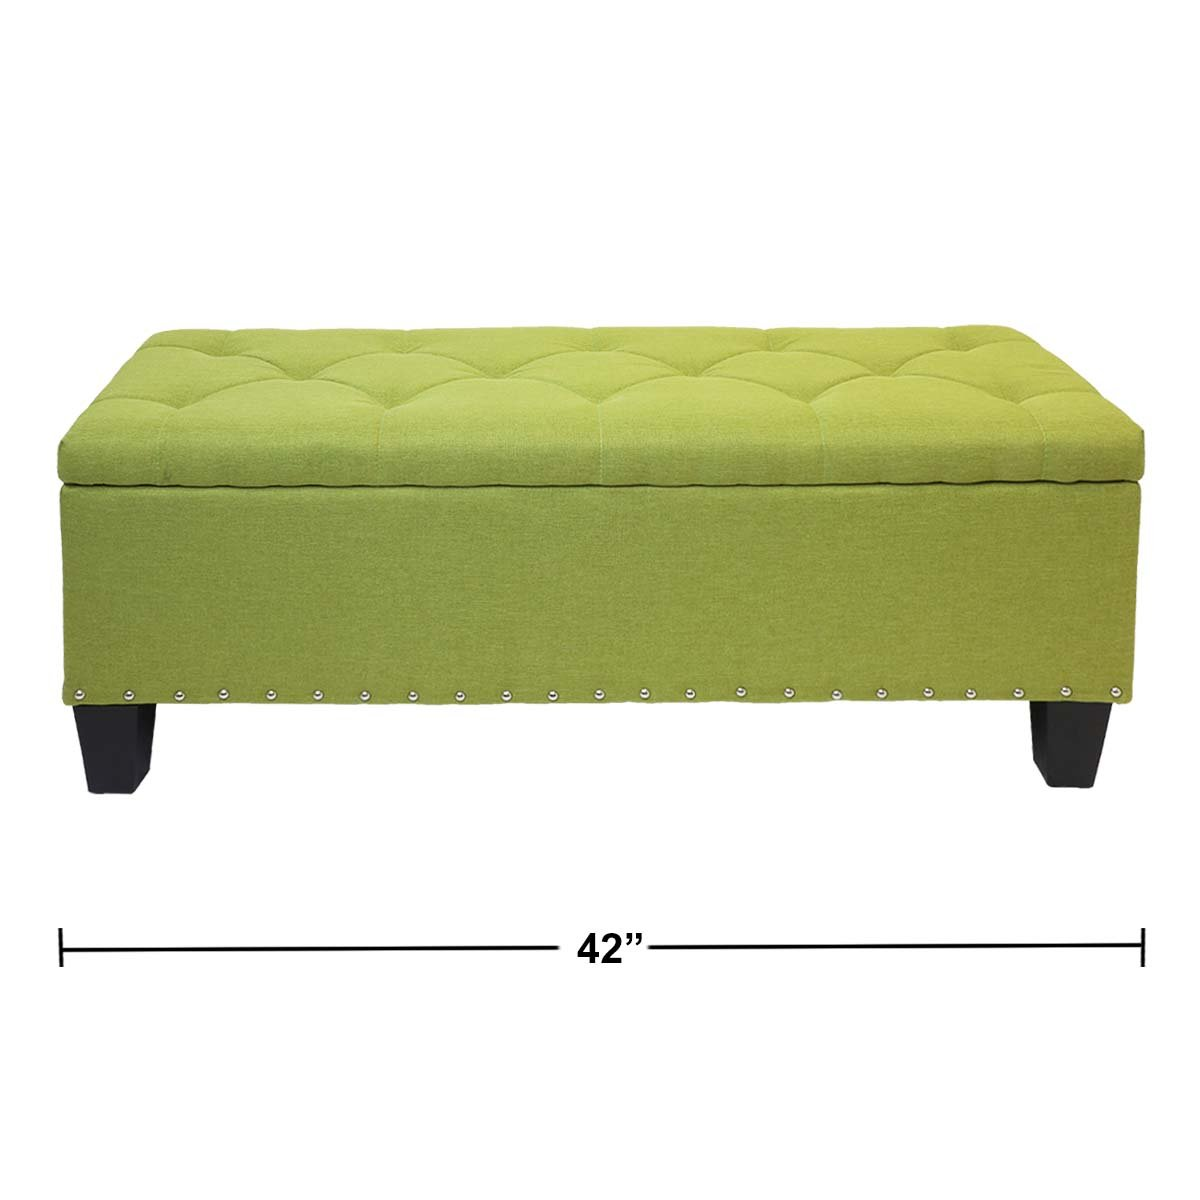 Magshion Rectangular Storage Ottoman Bench Tufted Footrest Lift Top Pouffe Ottoman, Coffee Table, Seat, Foot Rest, and more (42'', Linen Olive) by Magshion (Image #2)